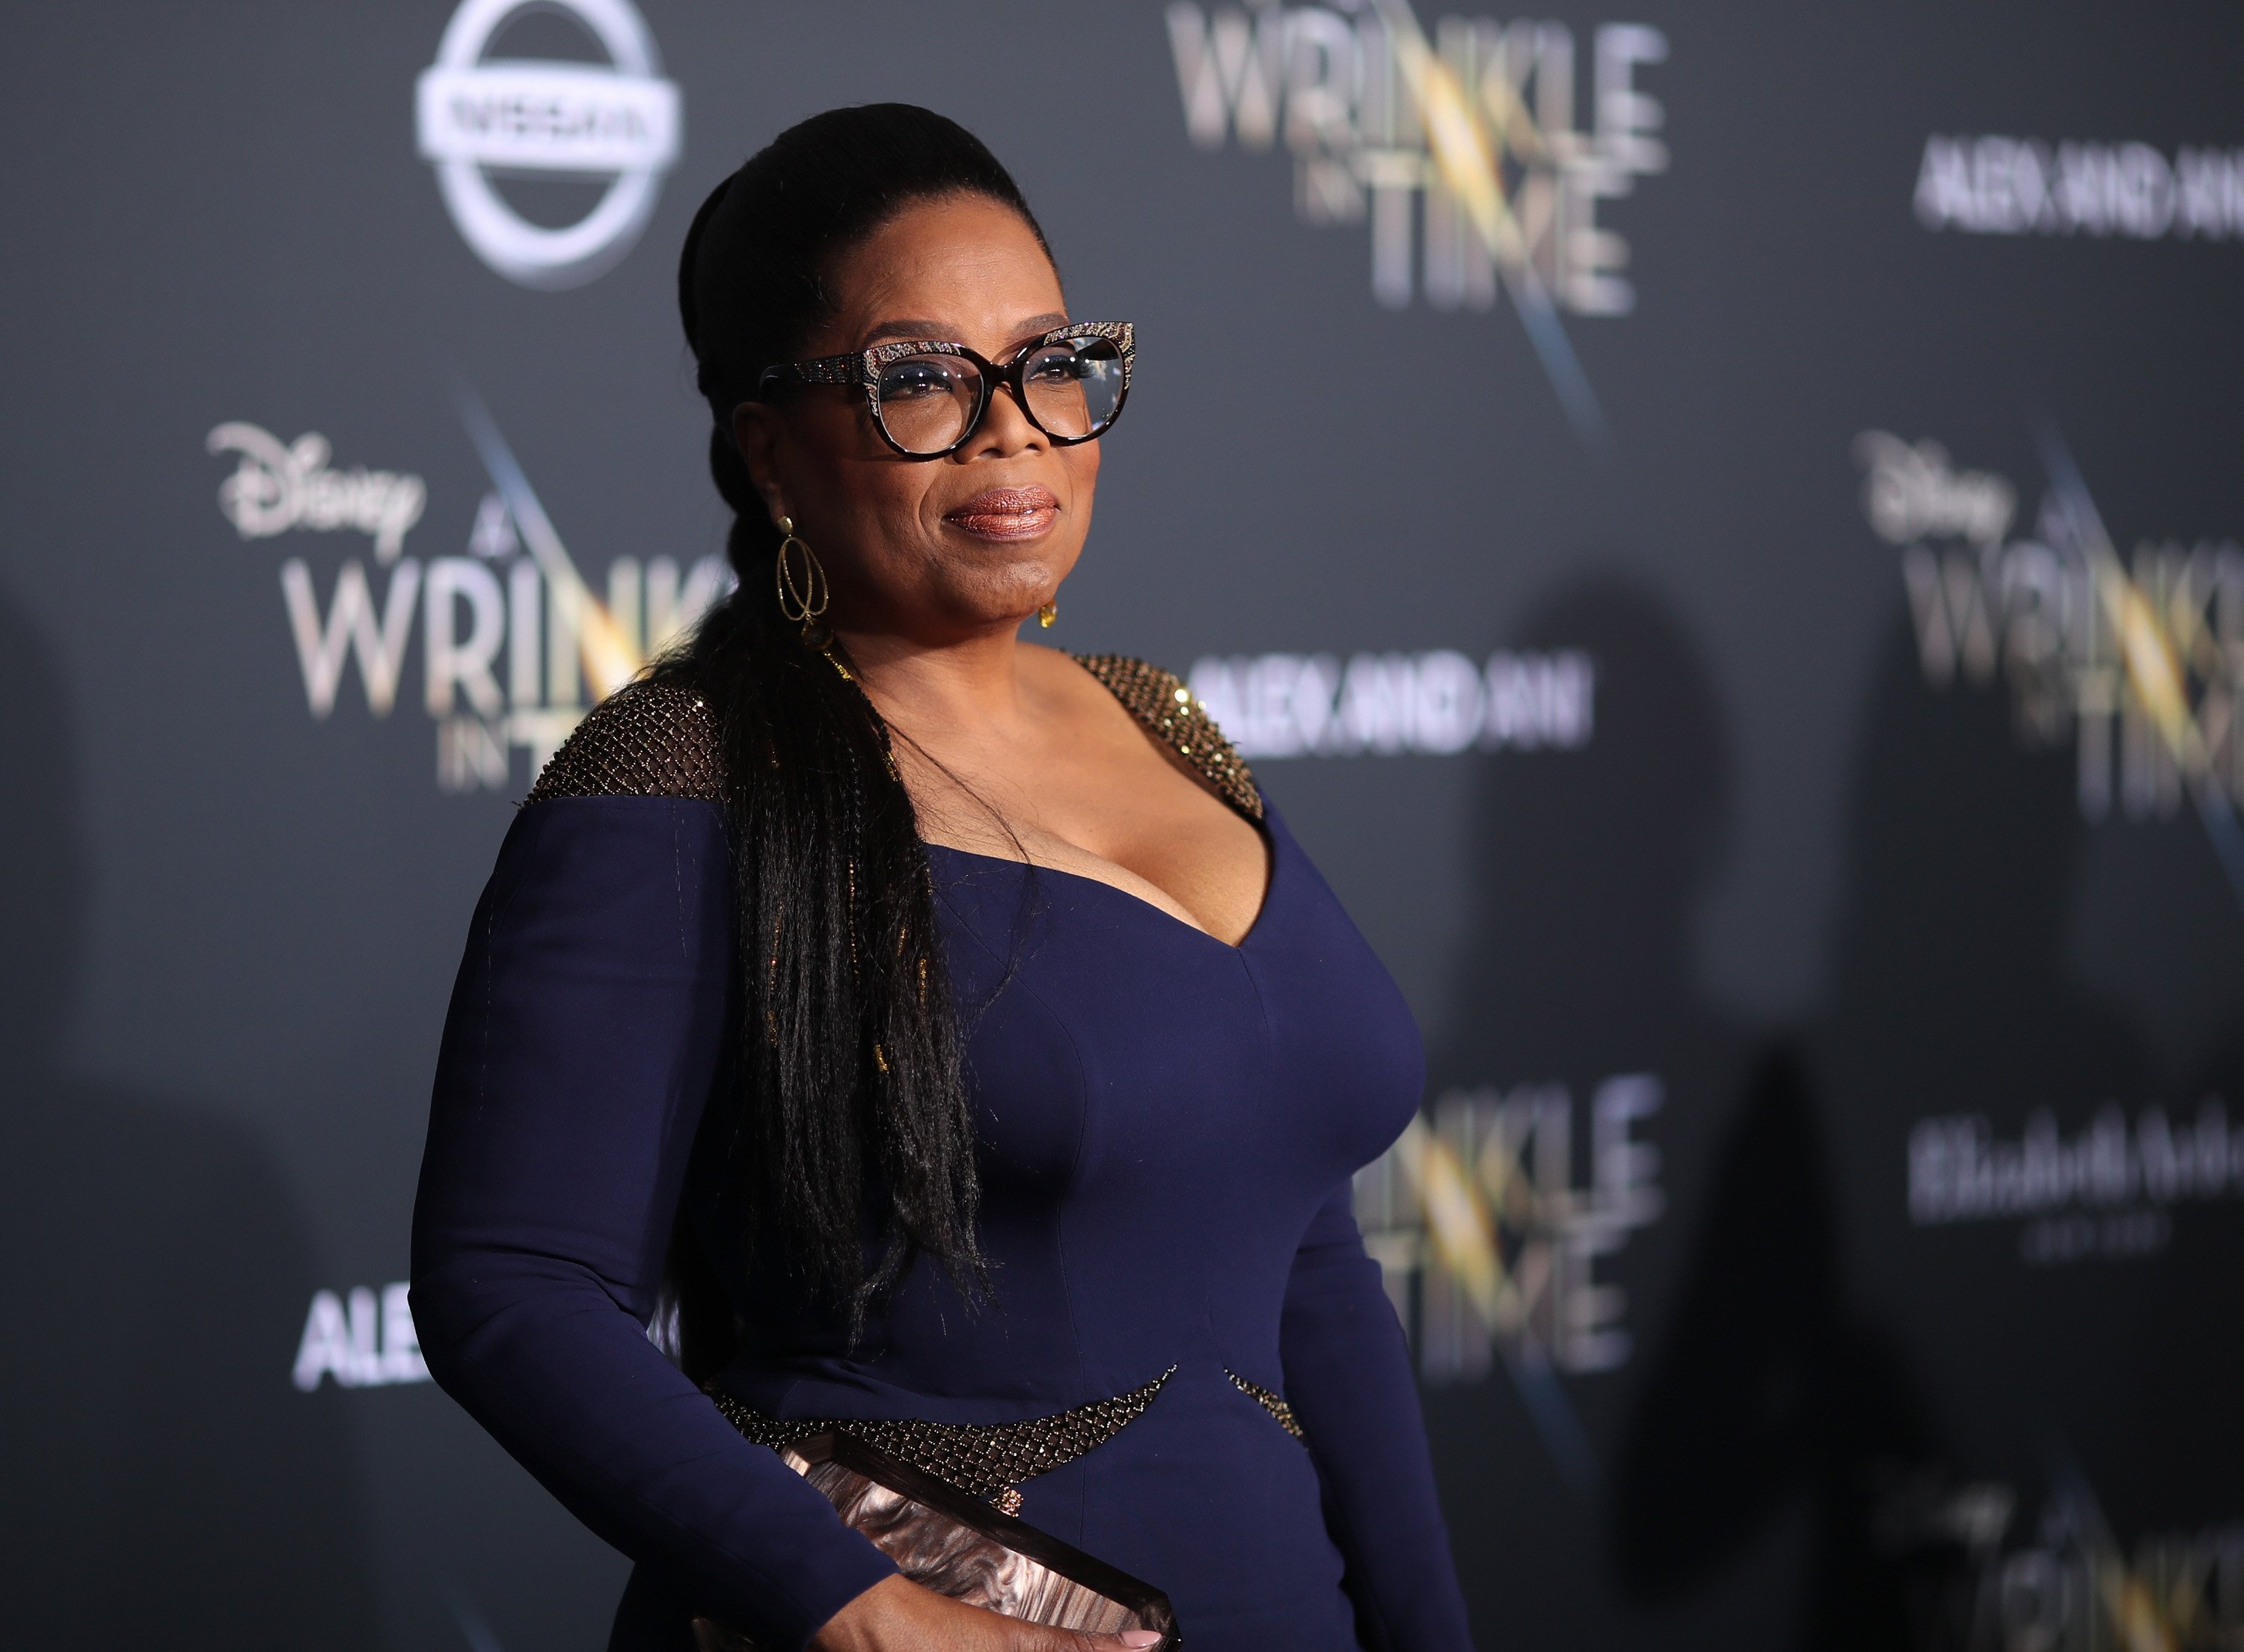 Oprah Winfrey discussed some of her past interactions with disgraced producer Harvey Weinstein in a wide ranging interview with Gwyneth Paltrow published Thursday.